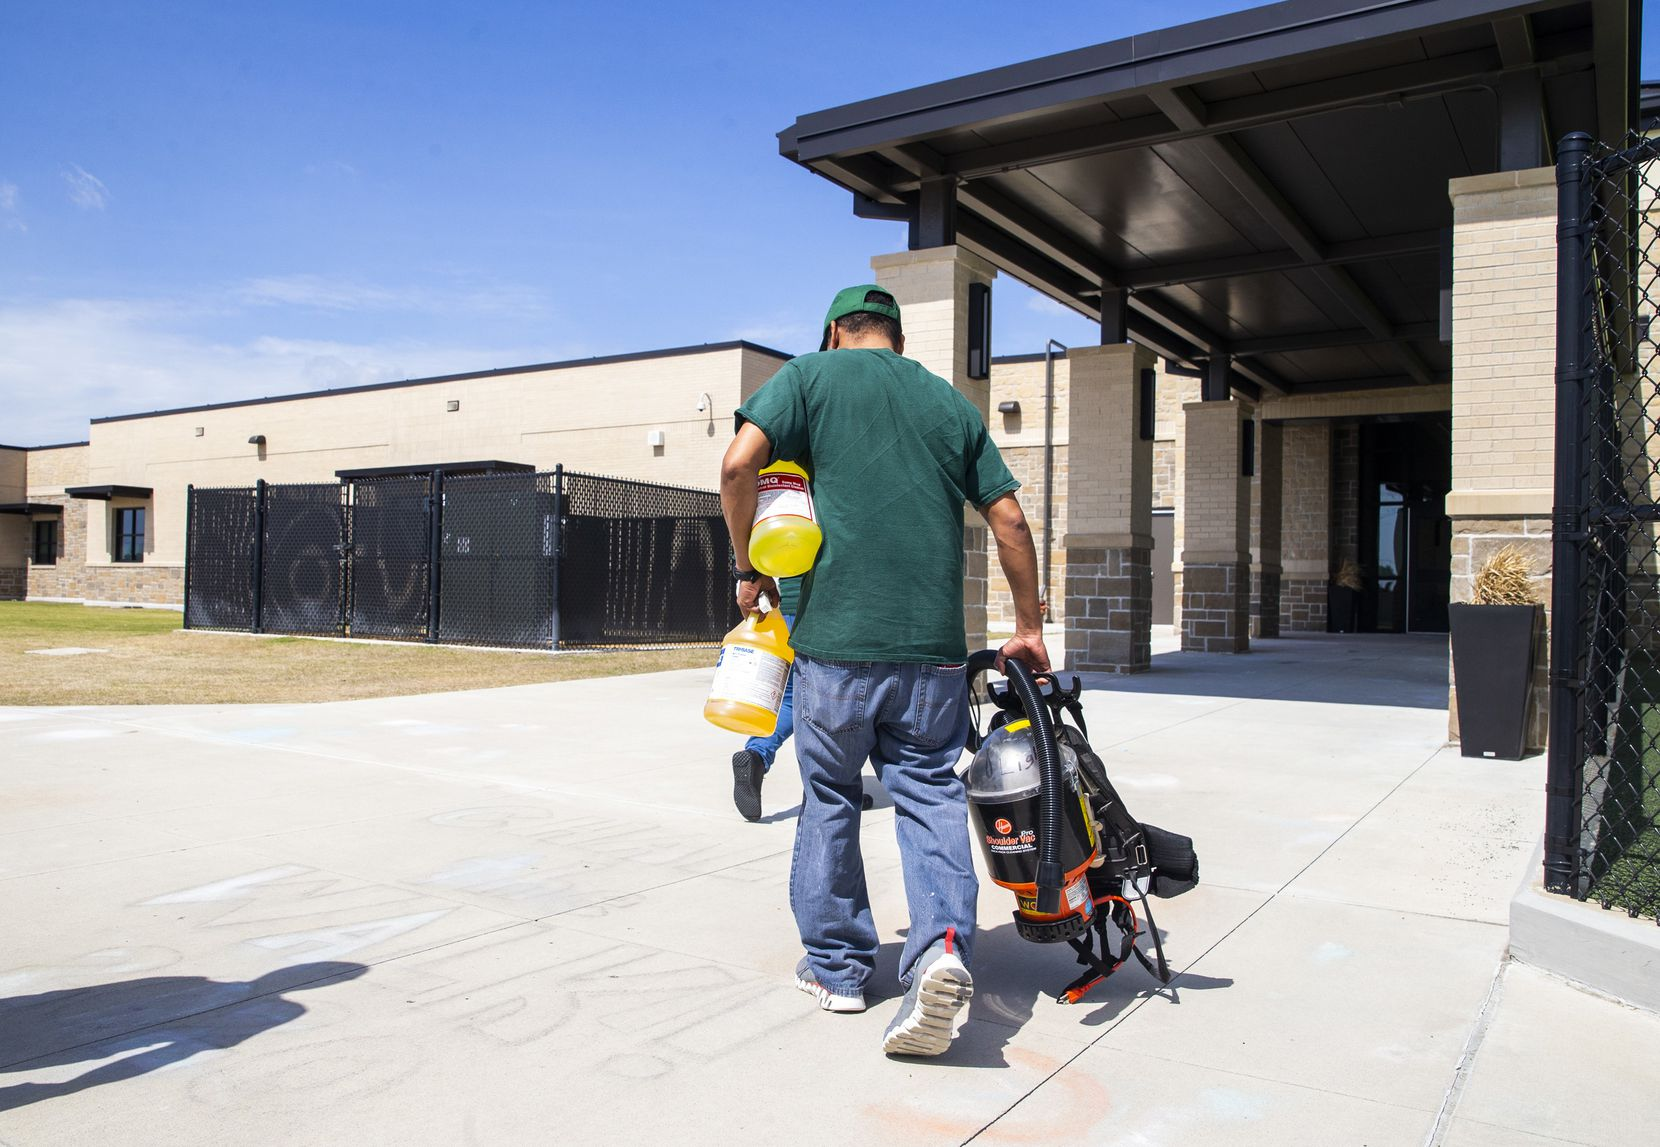 Custodian George Cox (right) carries a respirator and cleaning supplies into Jim Spradley Elementary School in Frisco, Texas, on Thursday, March 12, 2020. Frisco ISD custodial crews worked to disinfect campuses throughout Thursday in light of the COVID-19 global pandemic.